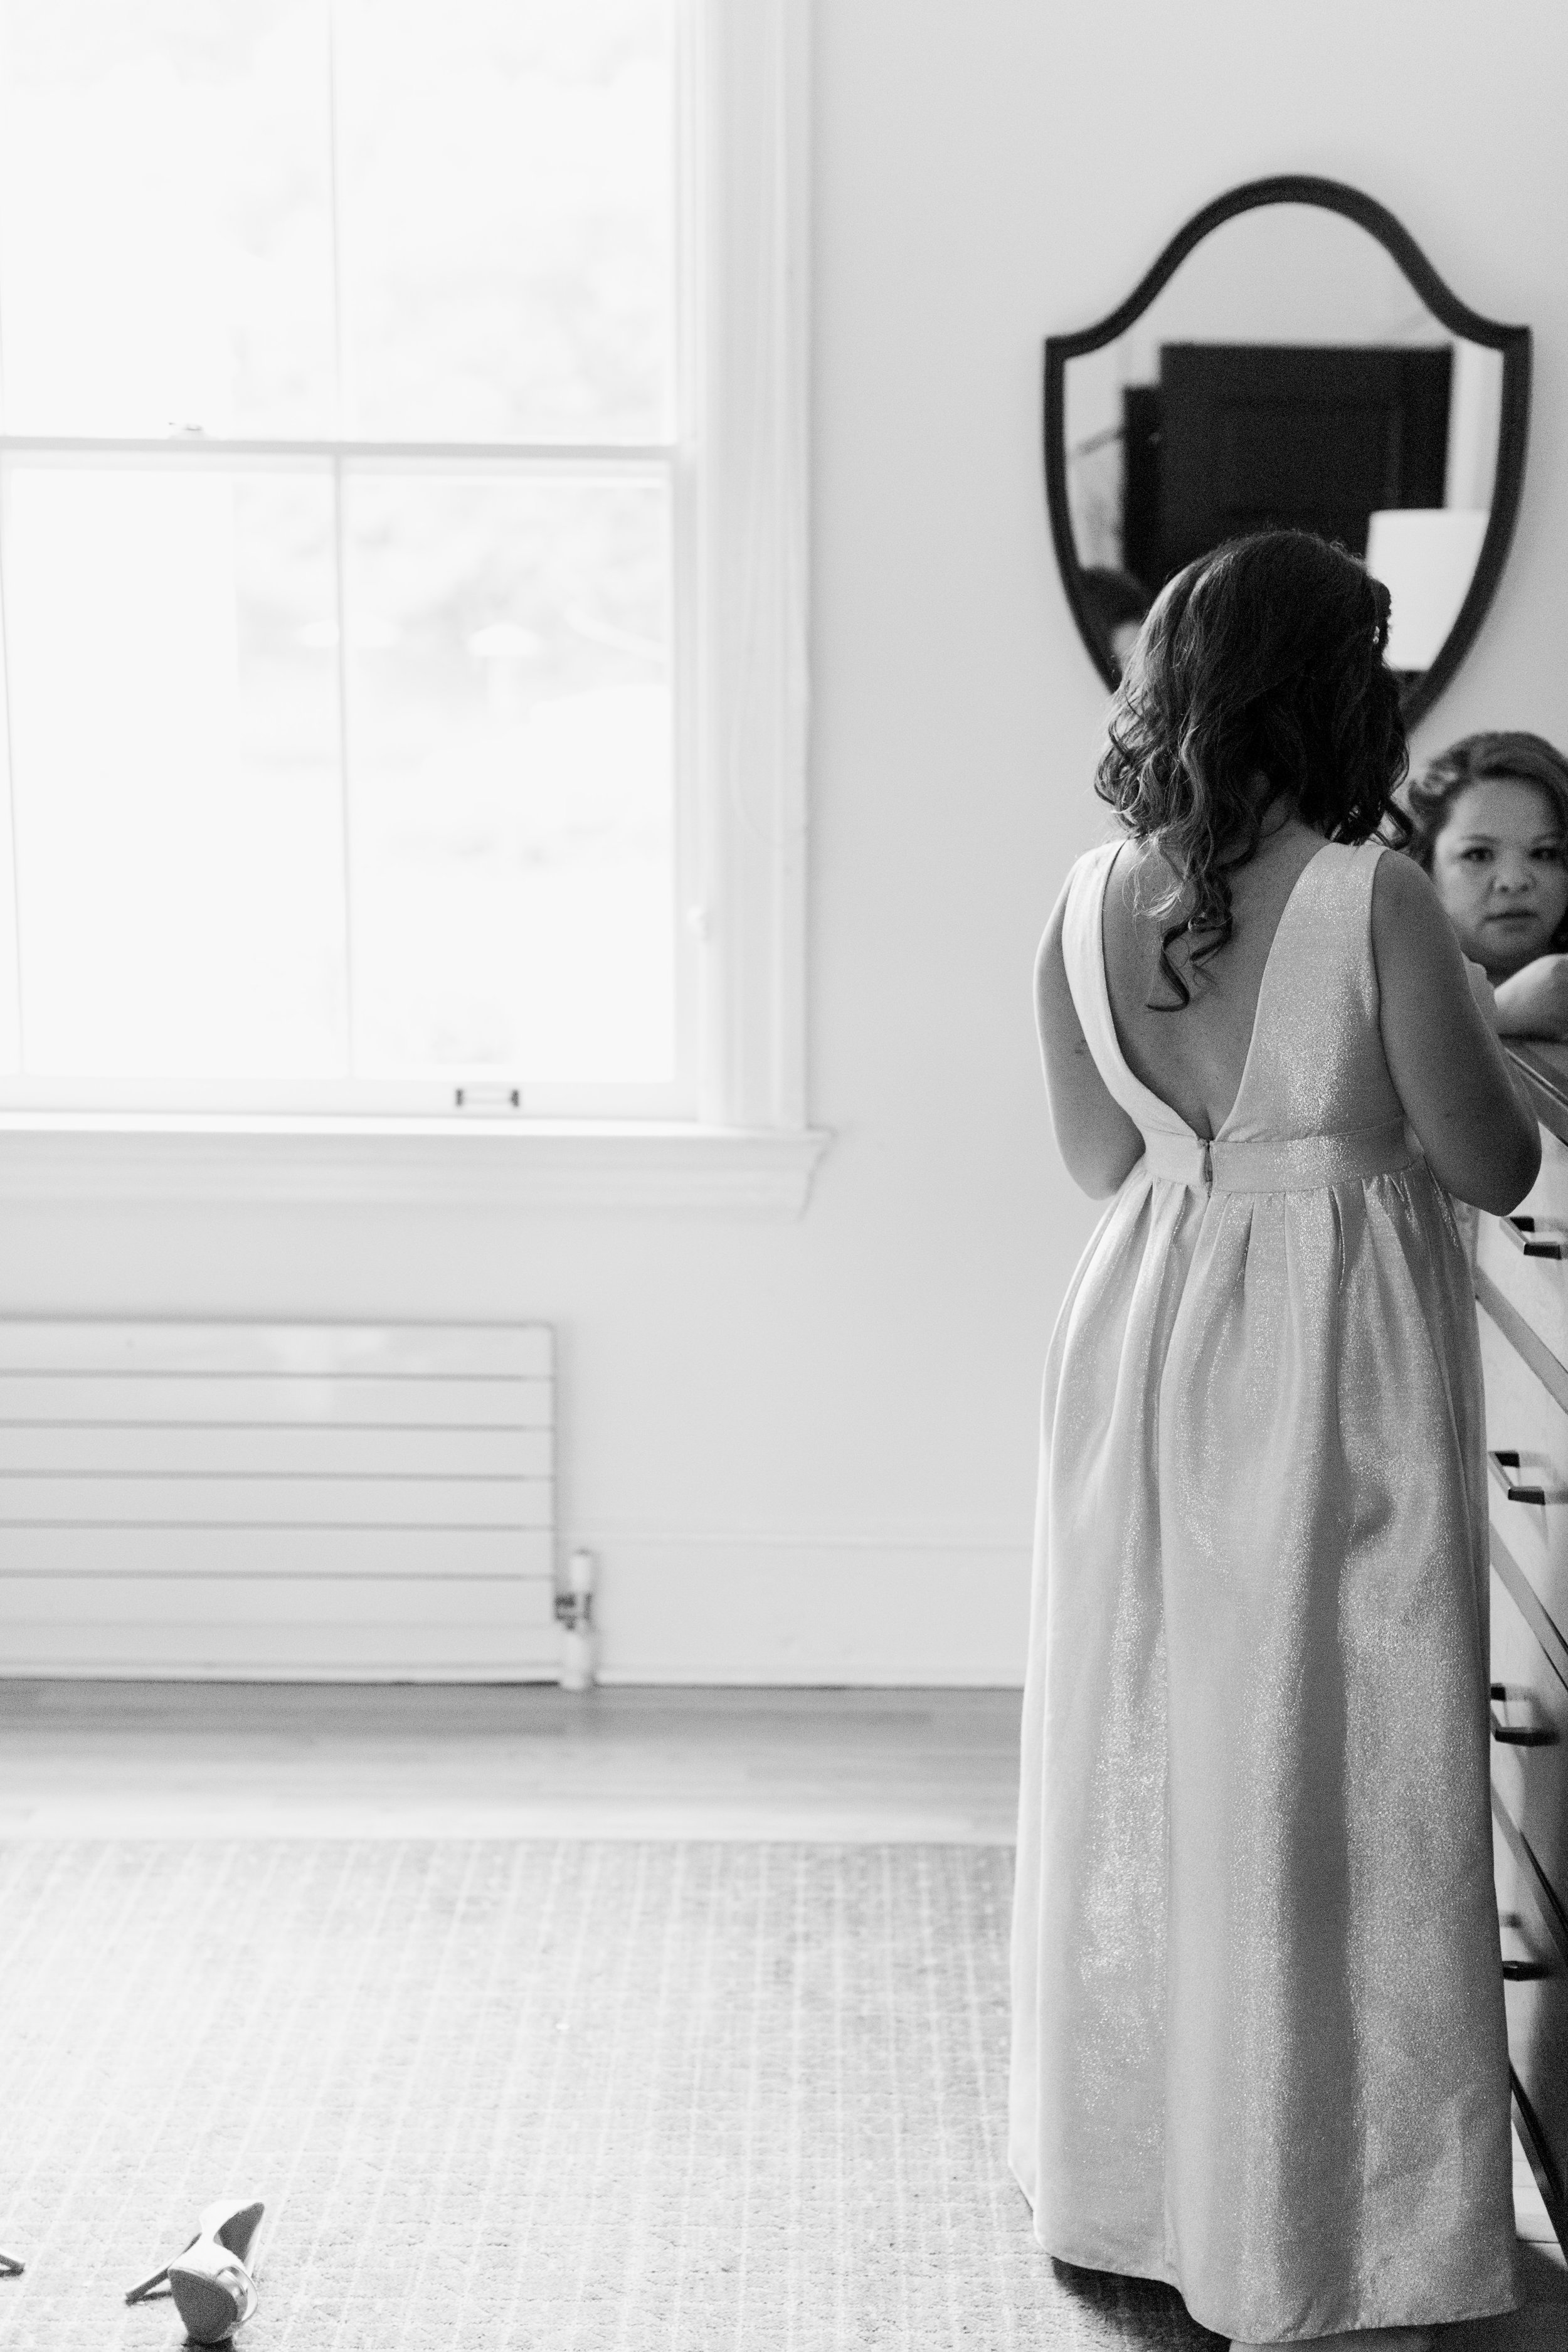 style-inspired-wedding-at-firehouse-8-in-san-francisco-11.jpg